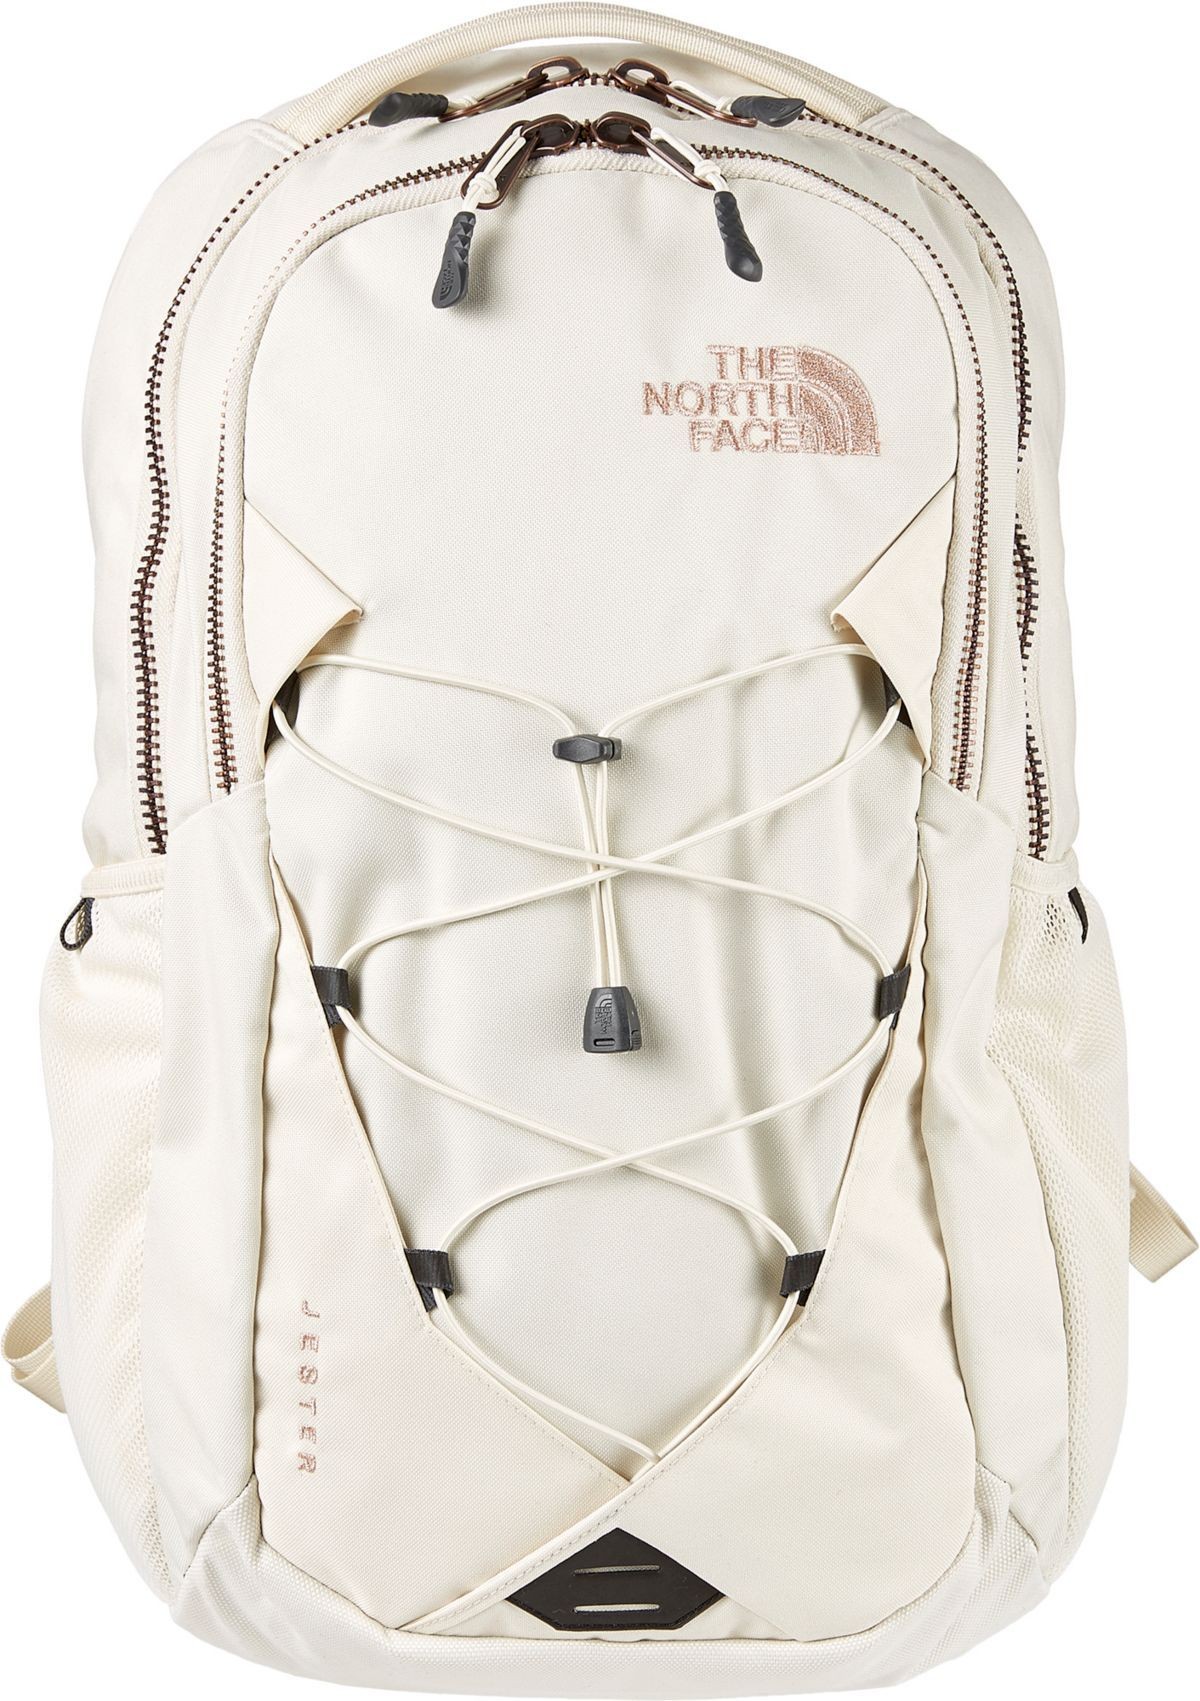 542fbad74 The North Face Women's Jester Luxe Backpack in 2019 | Want | Cute ...